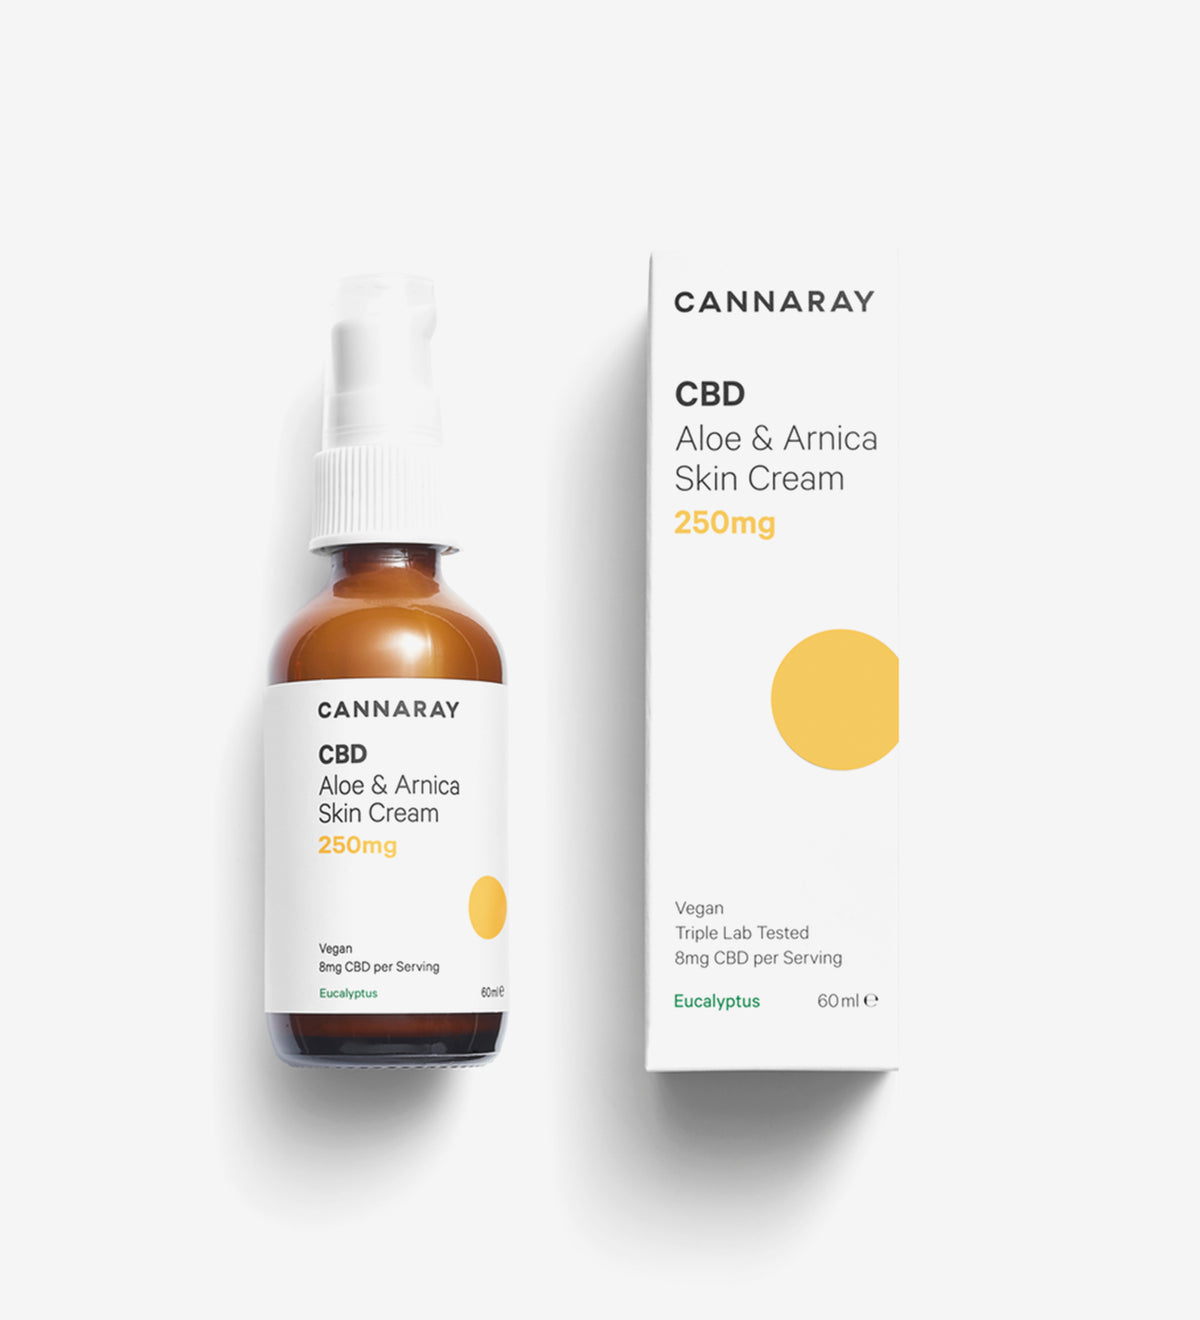 Cannaray Skin Cream